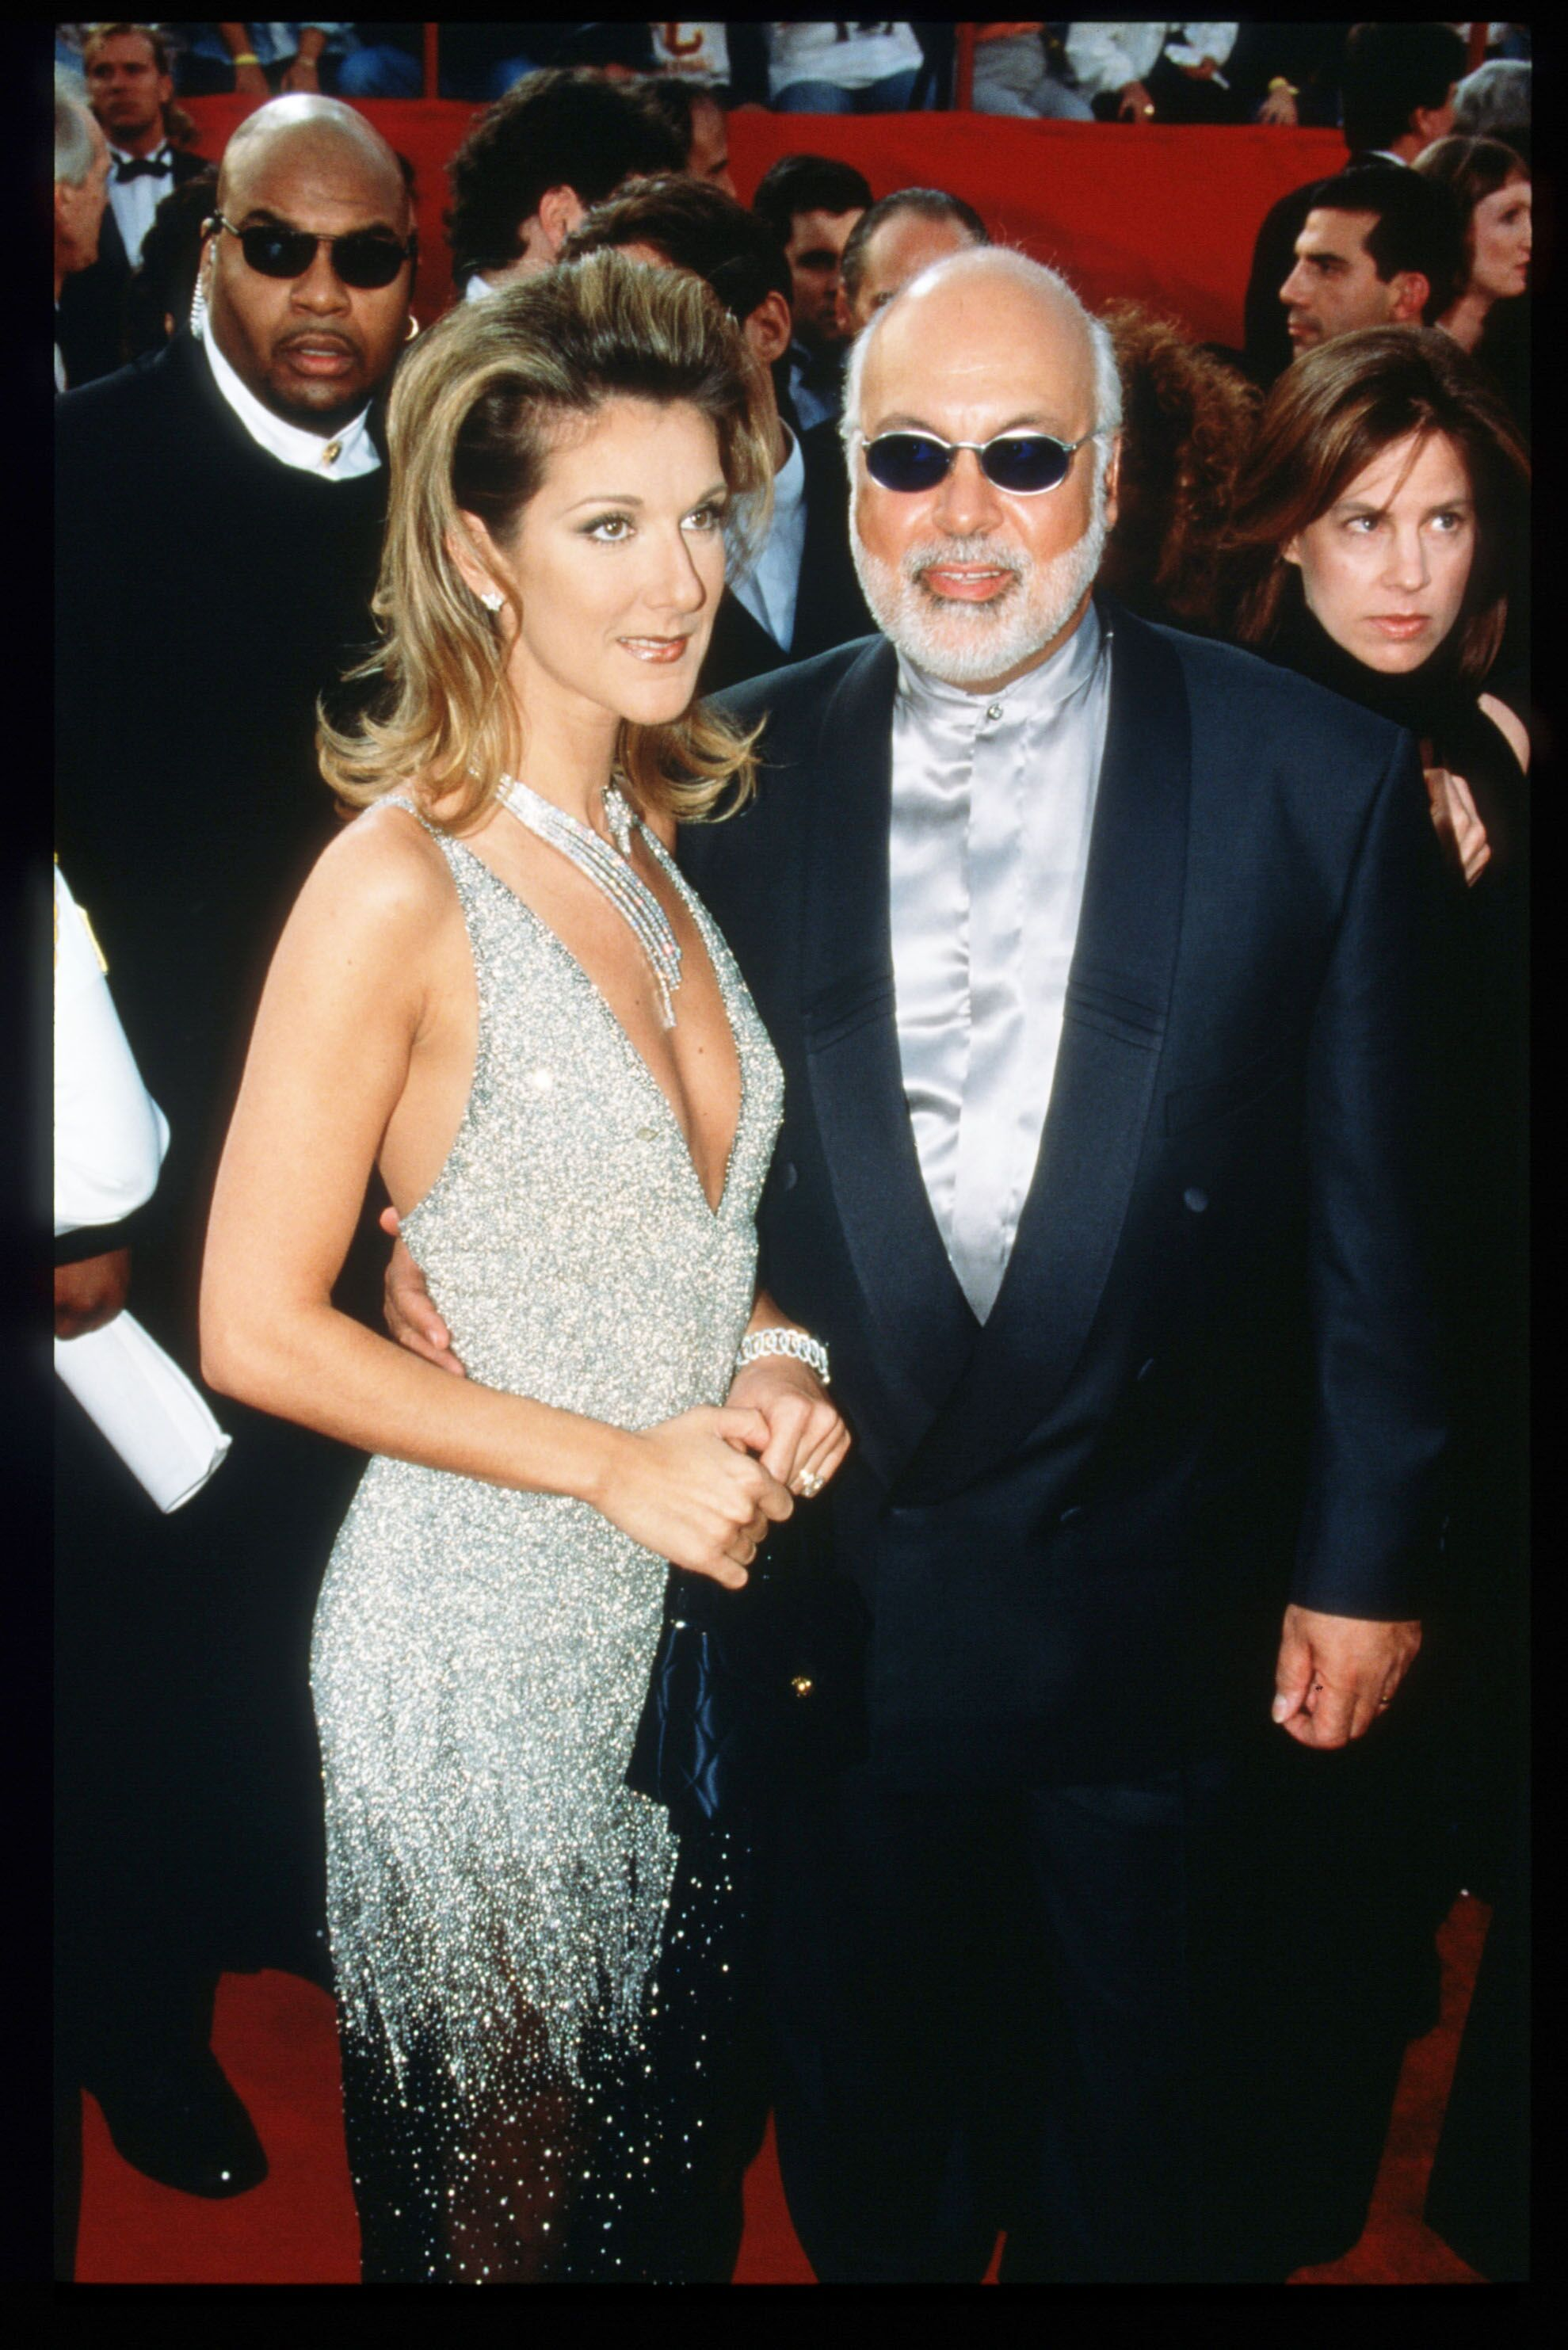 Celine Dion and her husband Rene Angelil at the 69th Annual Academy Awards in 1997 in Los Angeles | Source: Getty Images